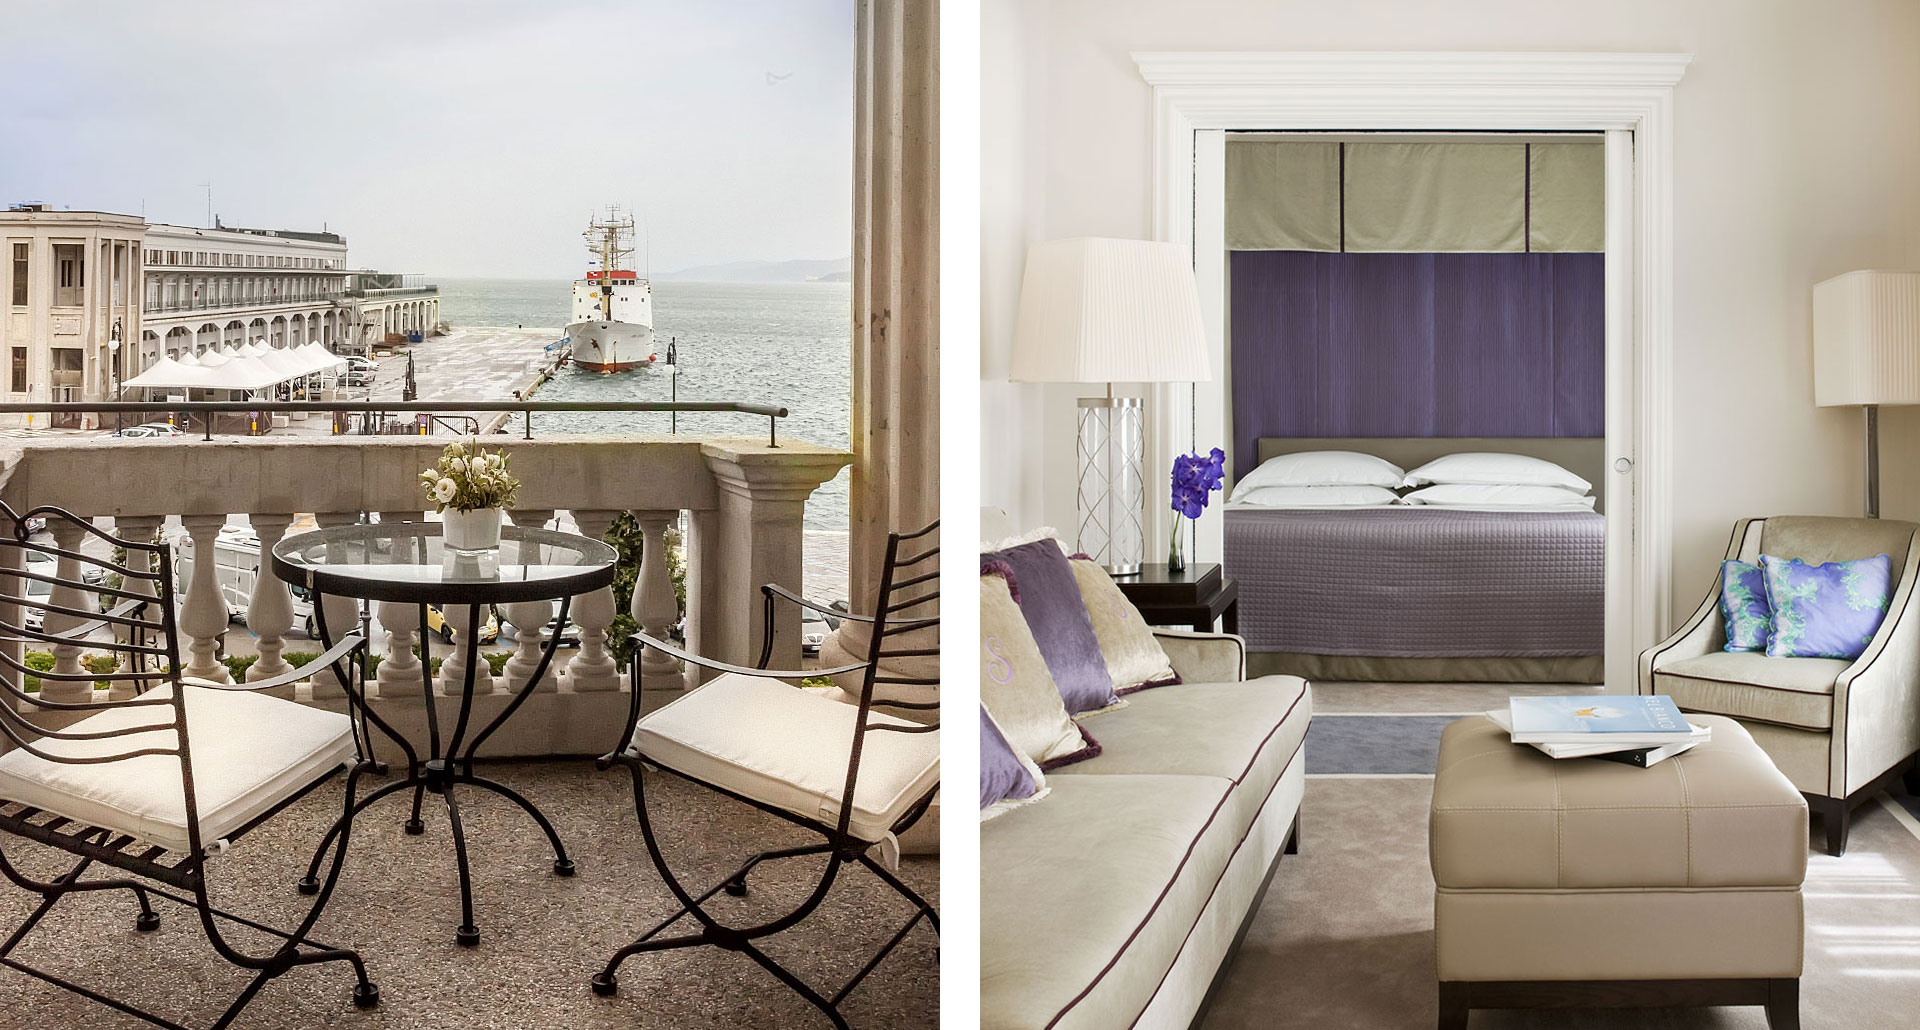 Savoia Excelsior Palace Trieste - boutique hotel in Trieste